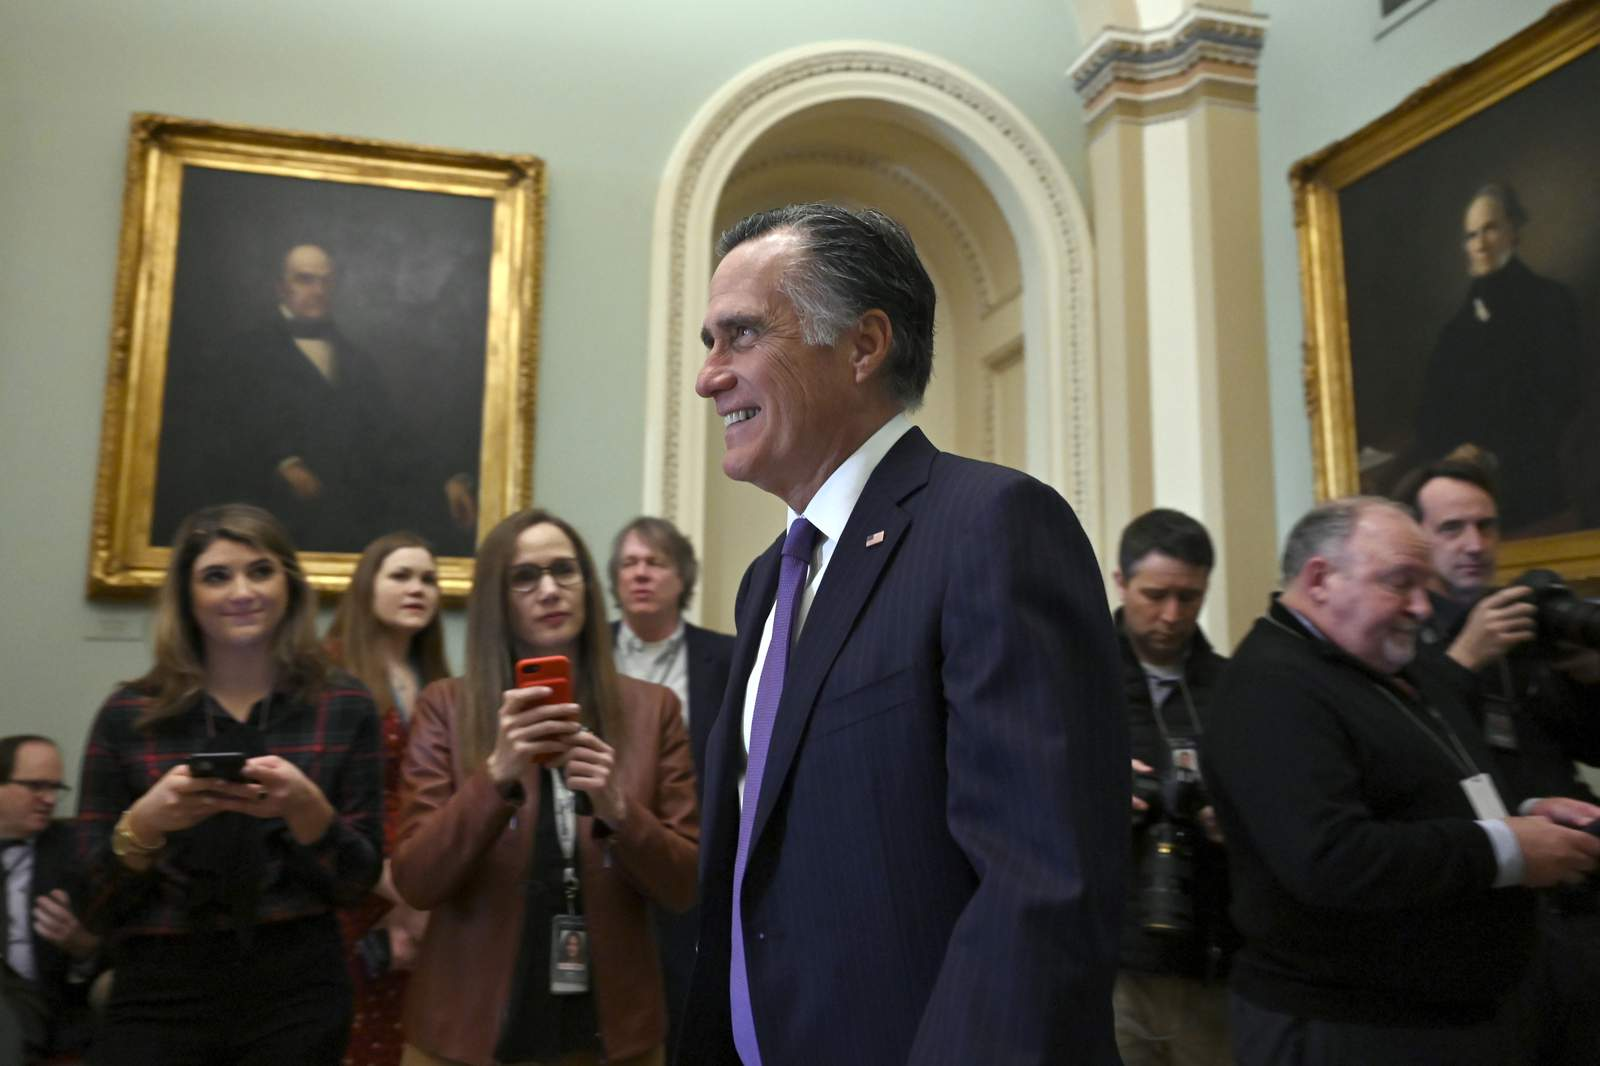 Mitt Romney Suggests Giving $1,000 Checks to Every American Adult as in Response to Coronavirus Pandemic